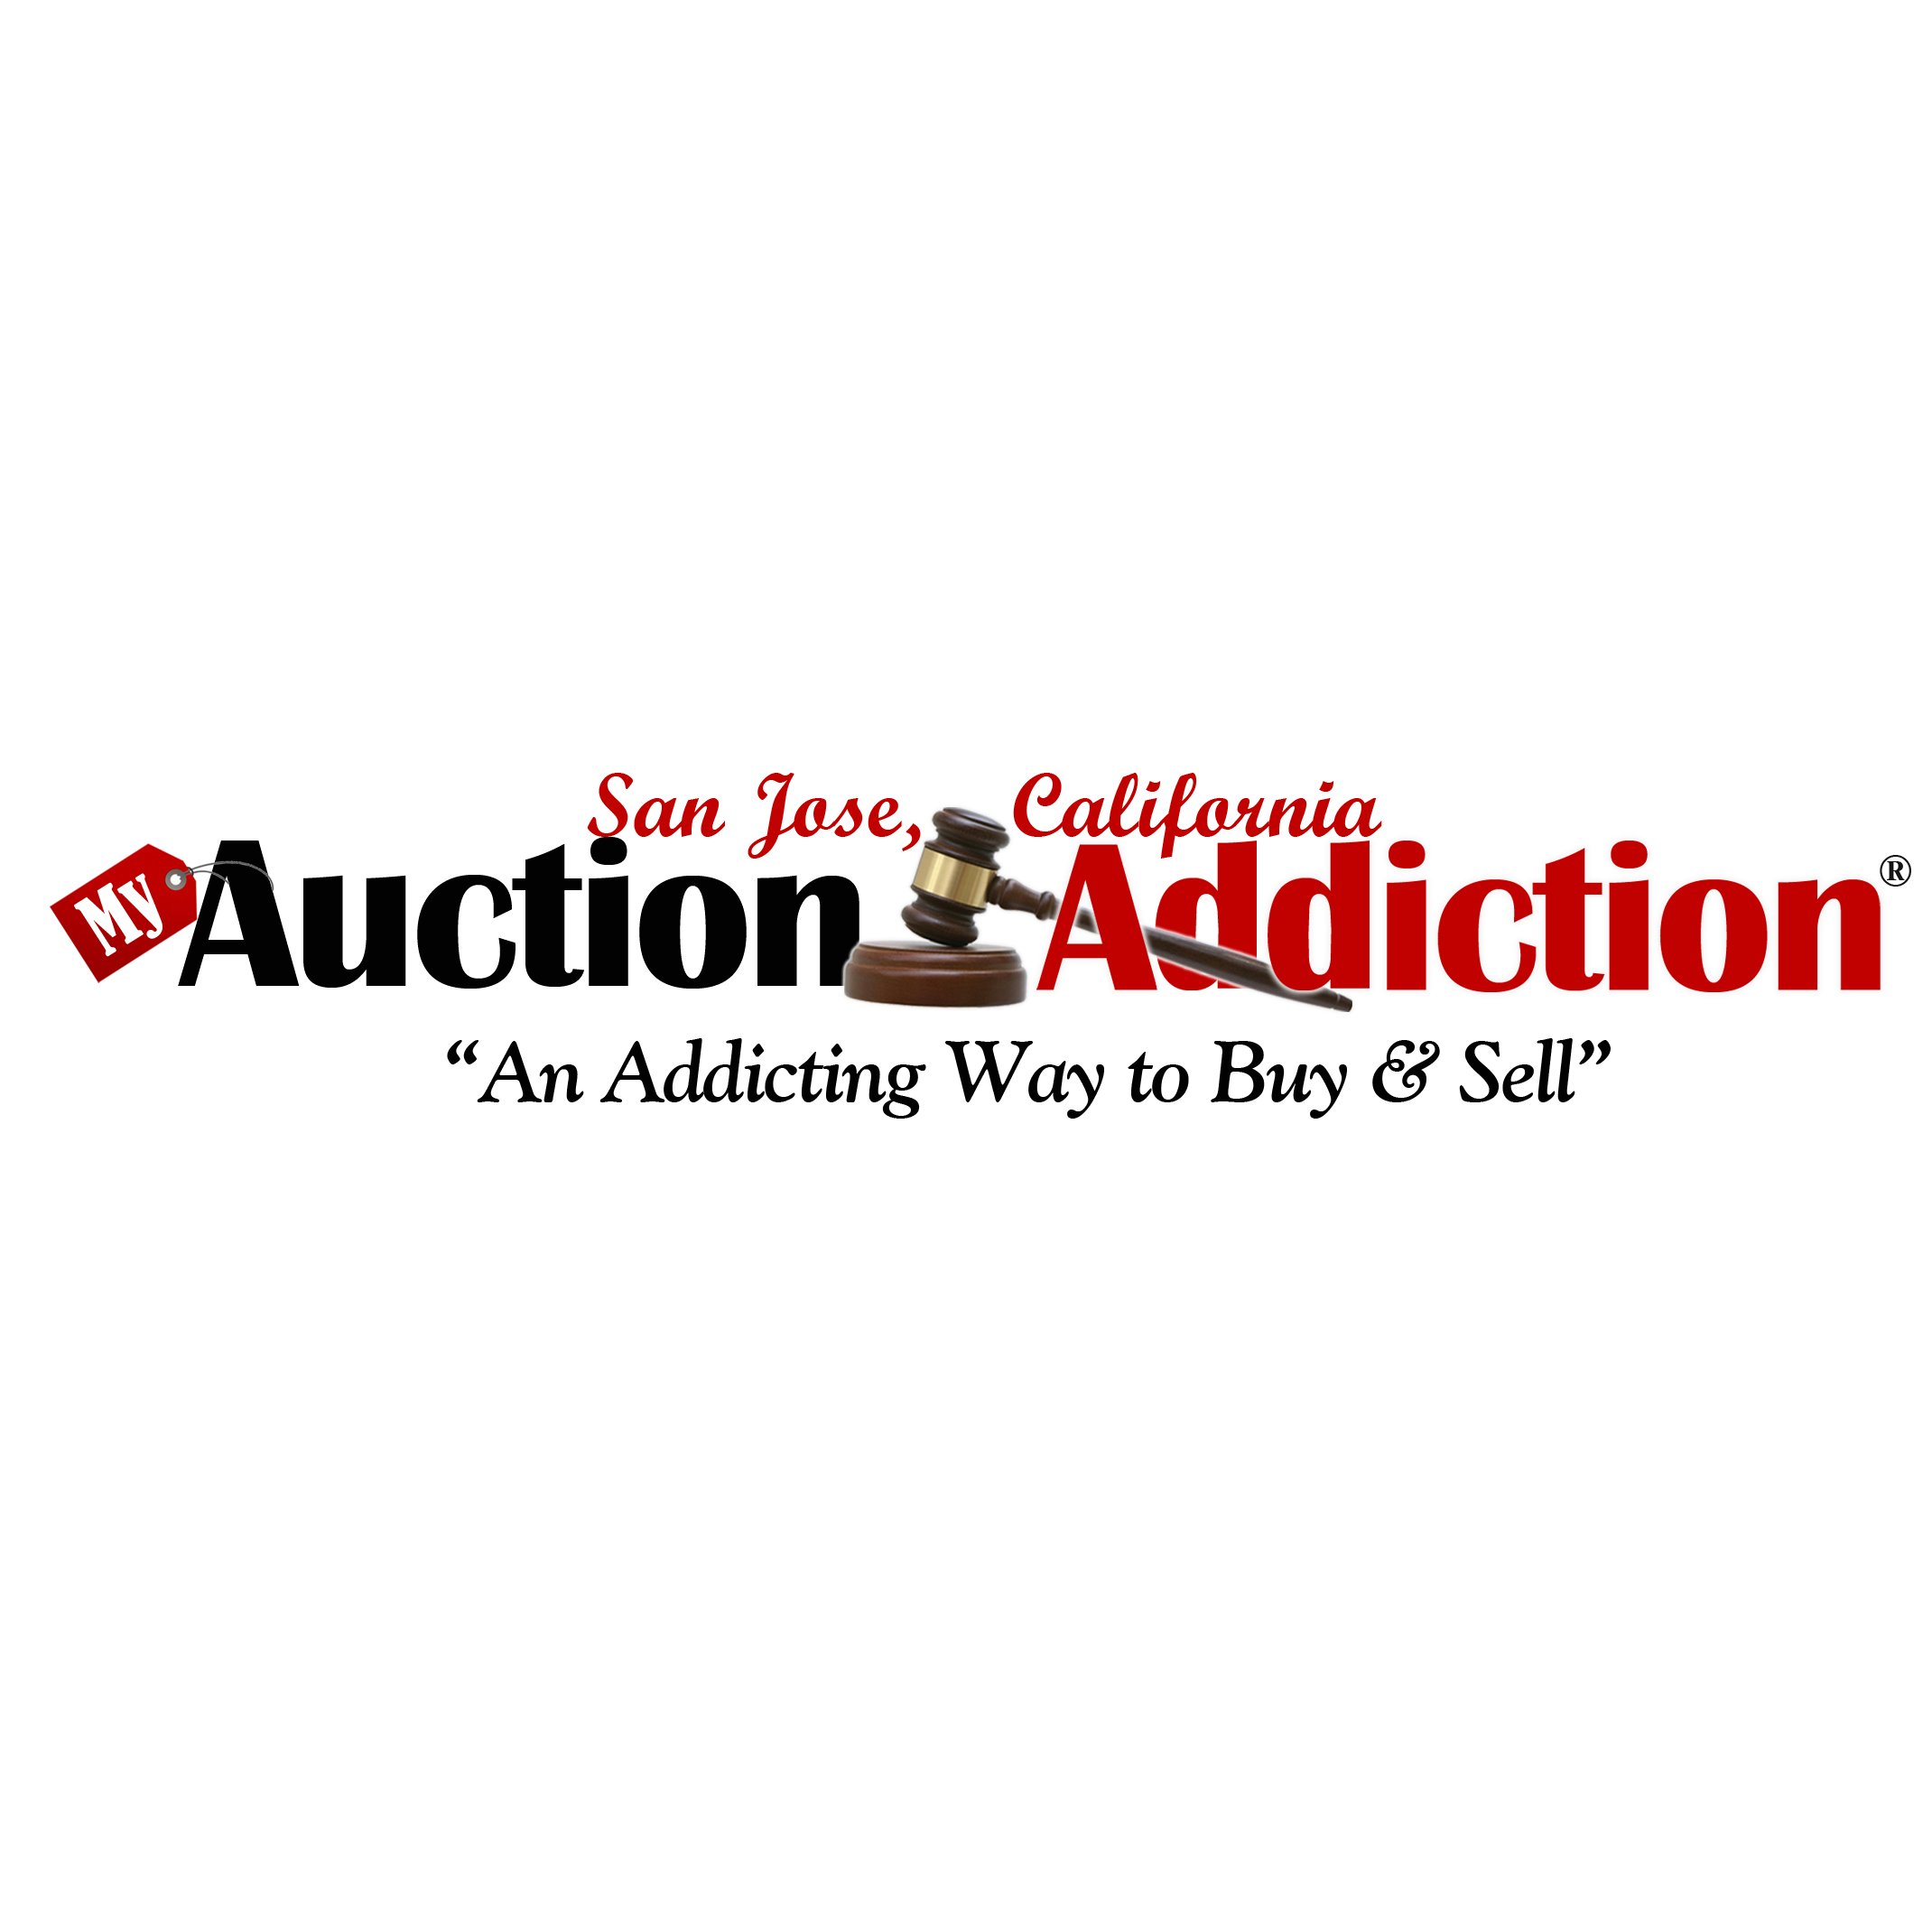 San Jose Auction Addiction